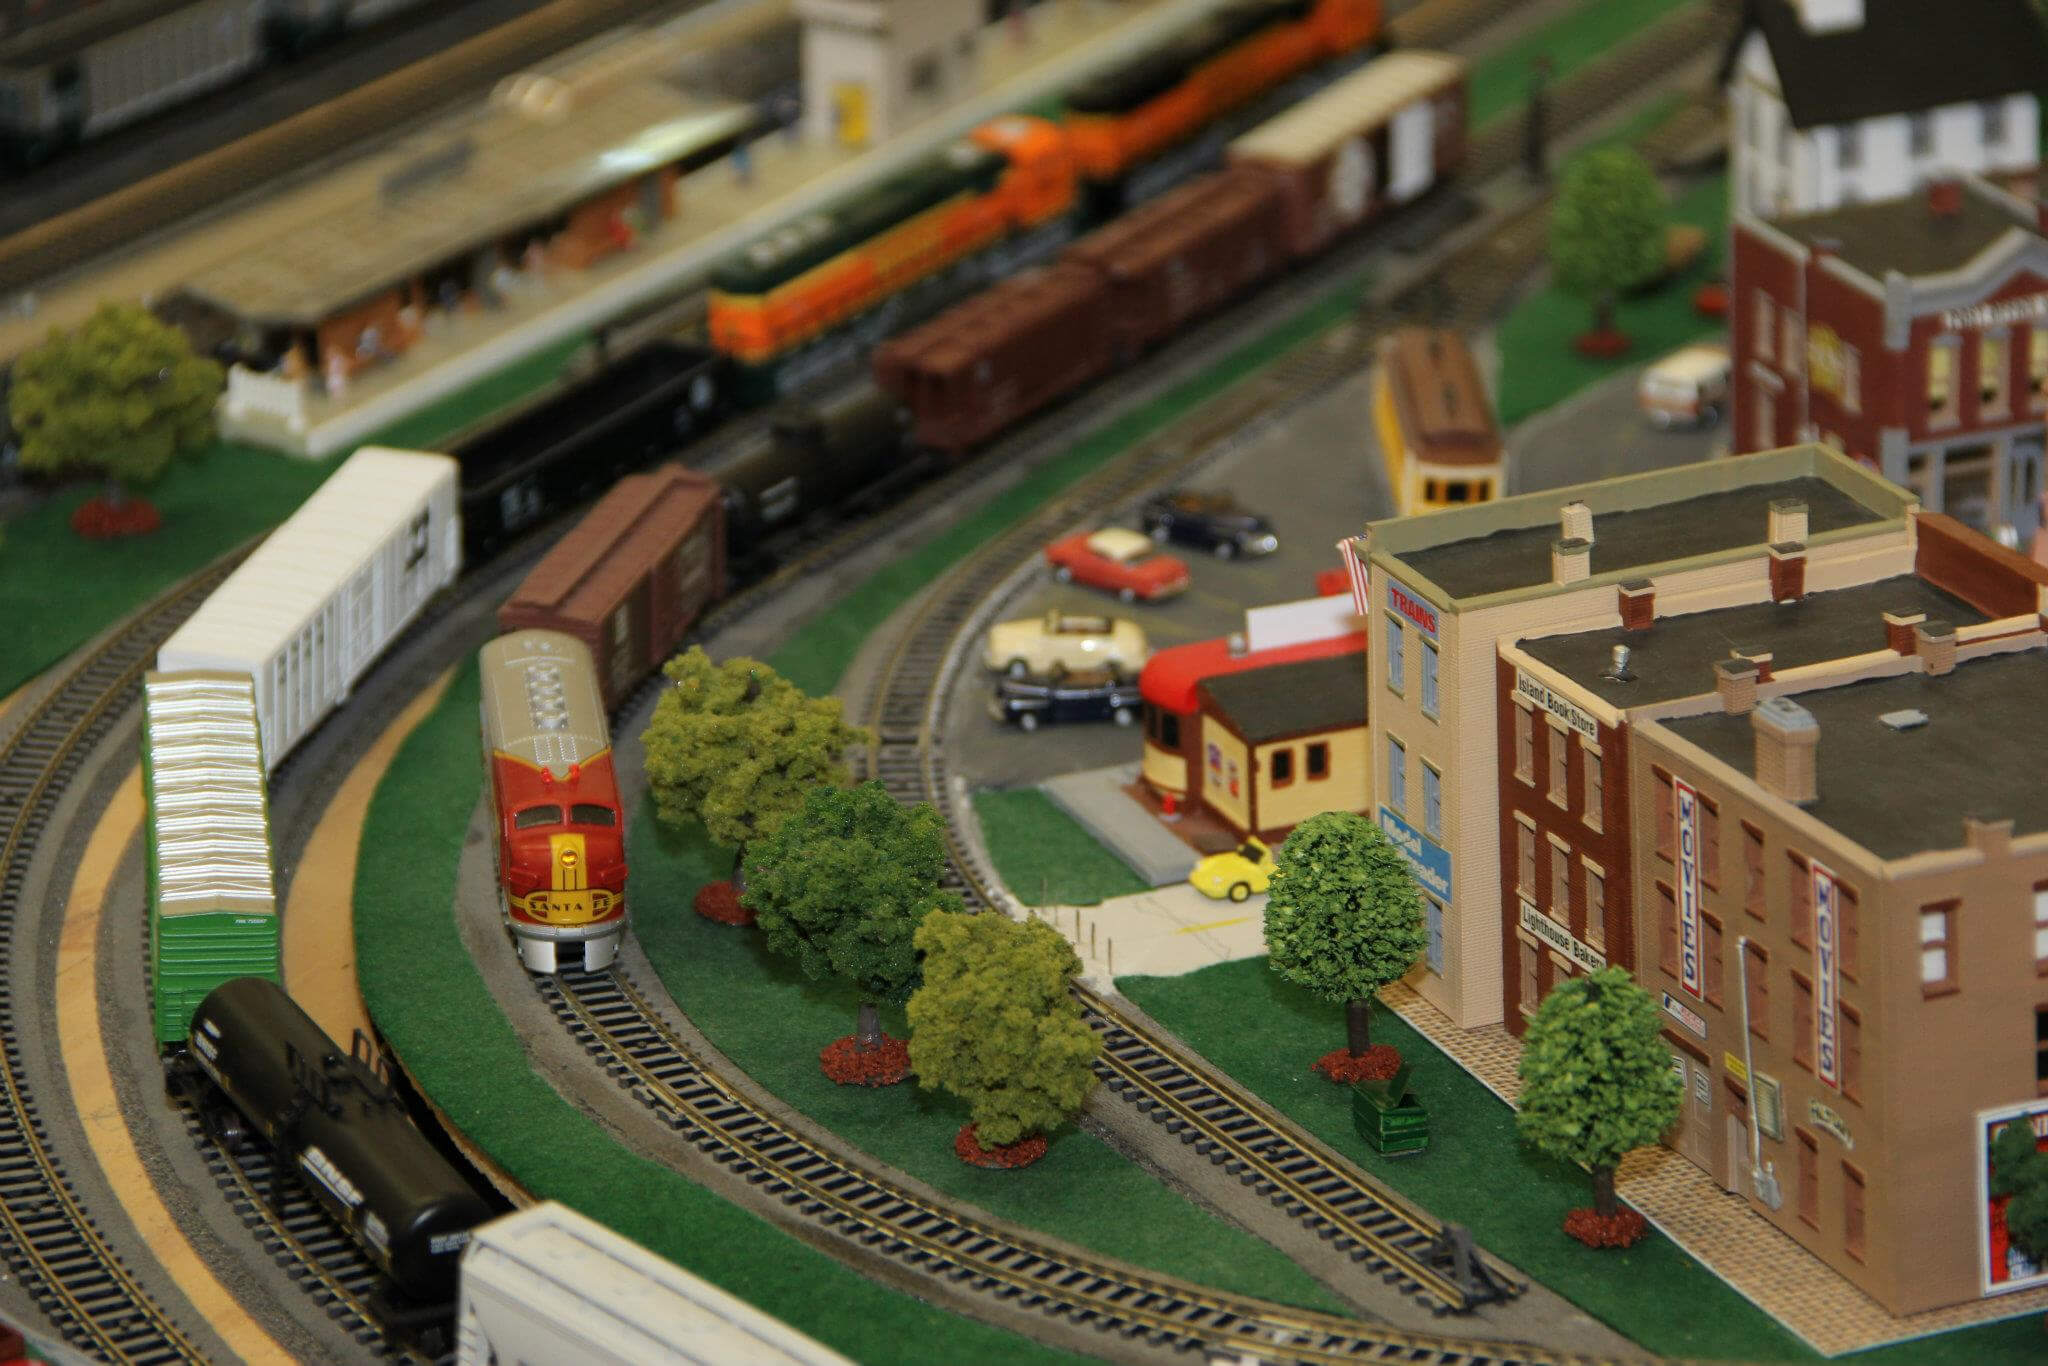 Peek inside a model of Gehry's extreme model railroad museum